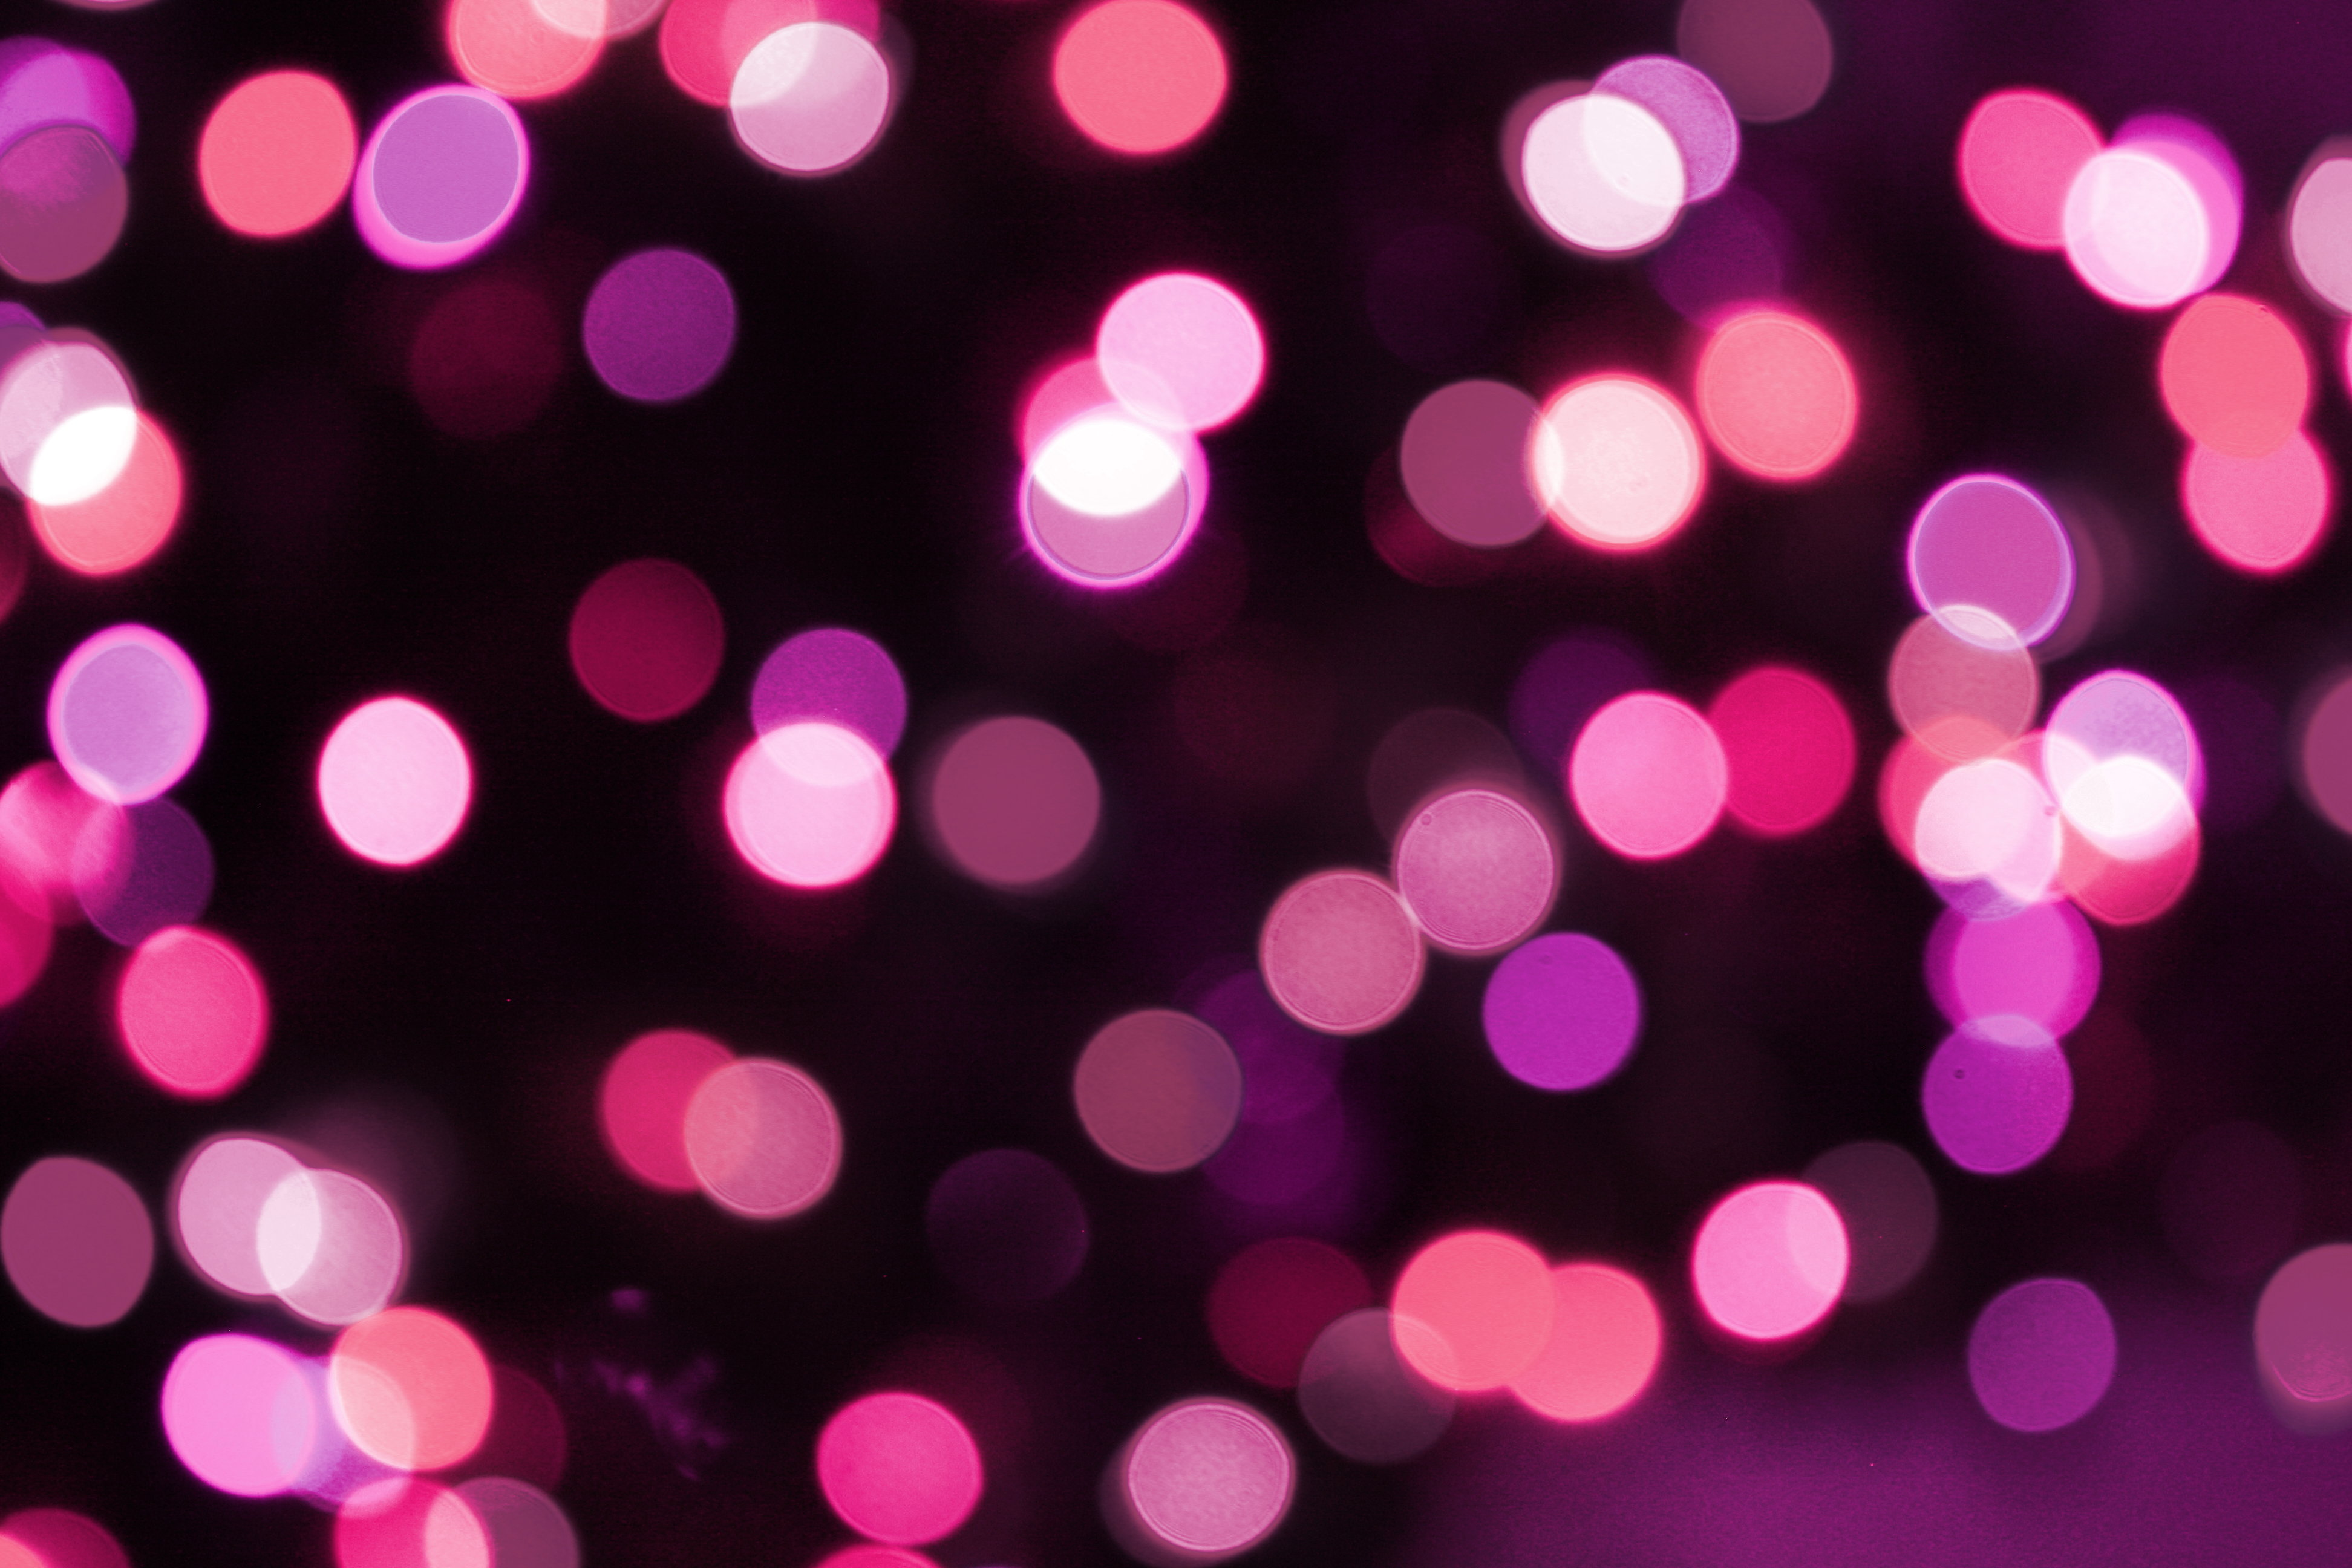 Pink Christmas Lights.Soft Focus Pink Christmas Lights Texture Picture Free